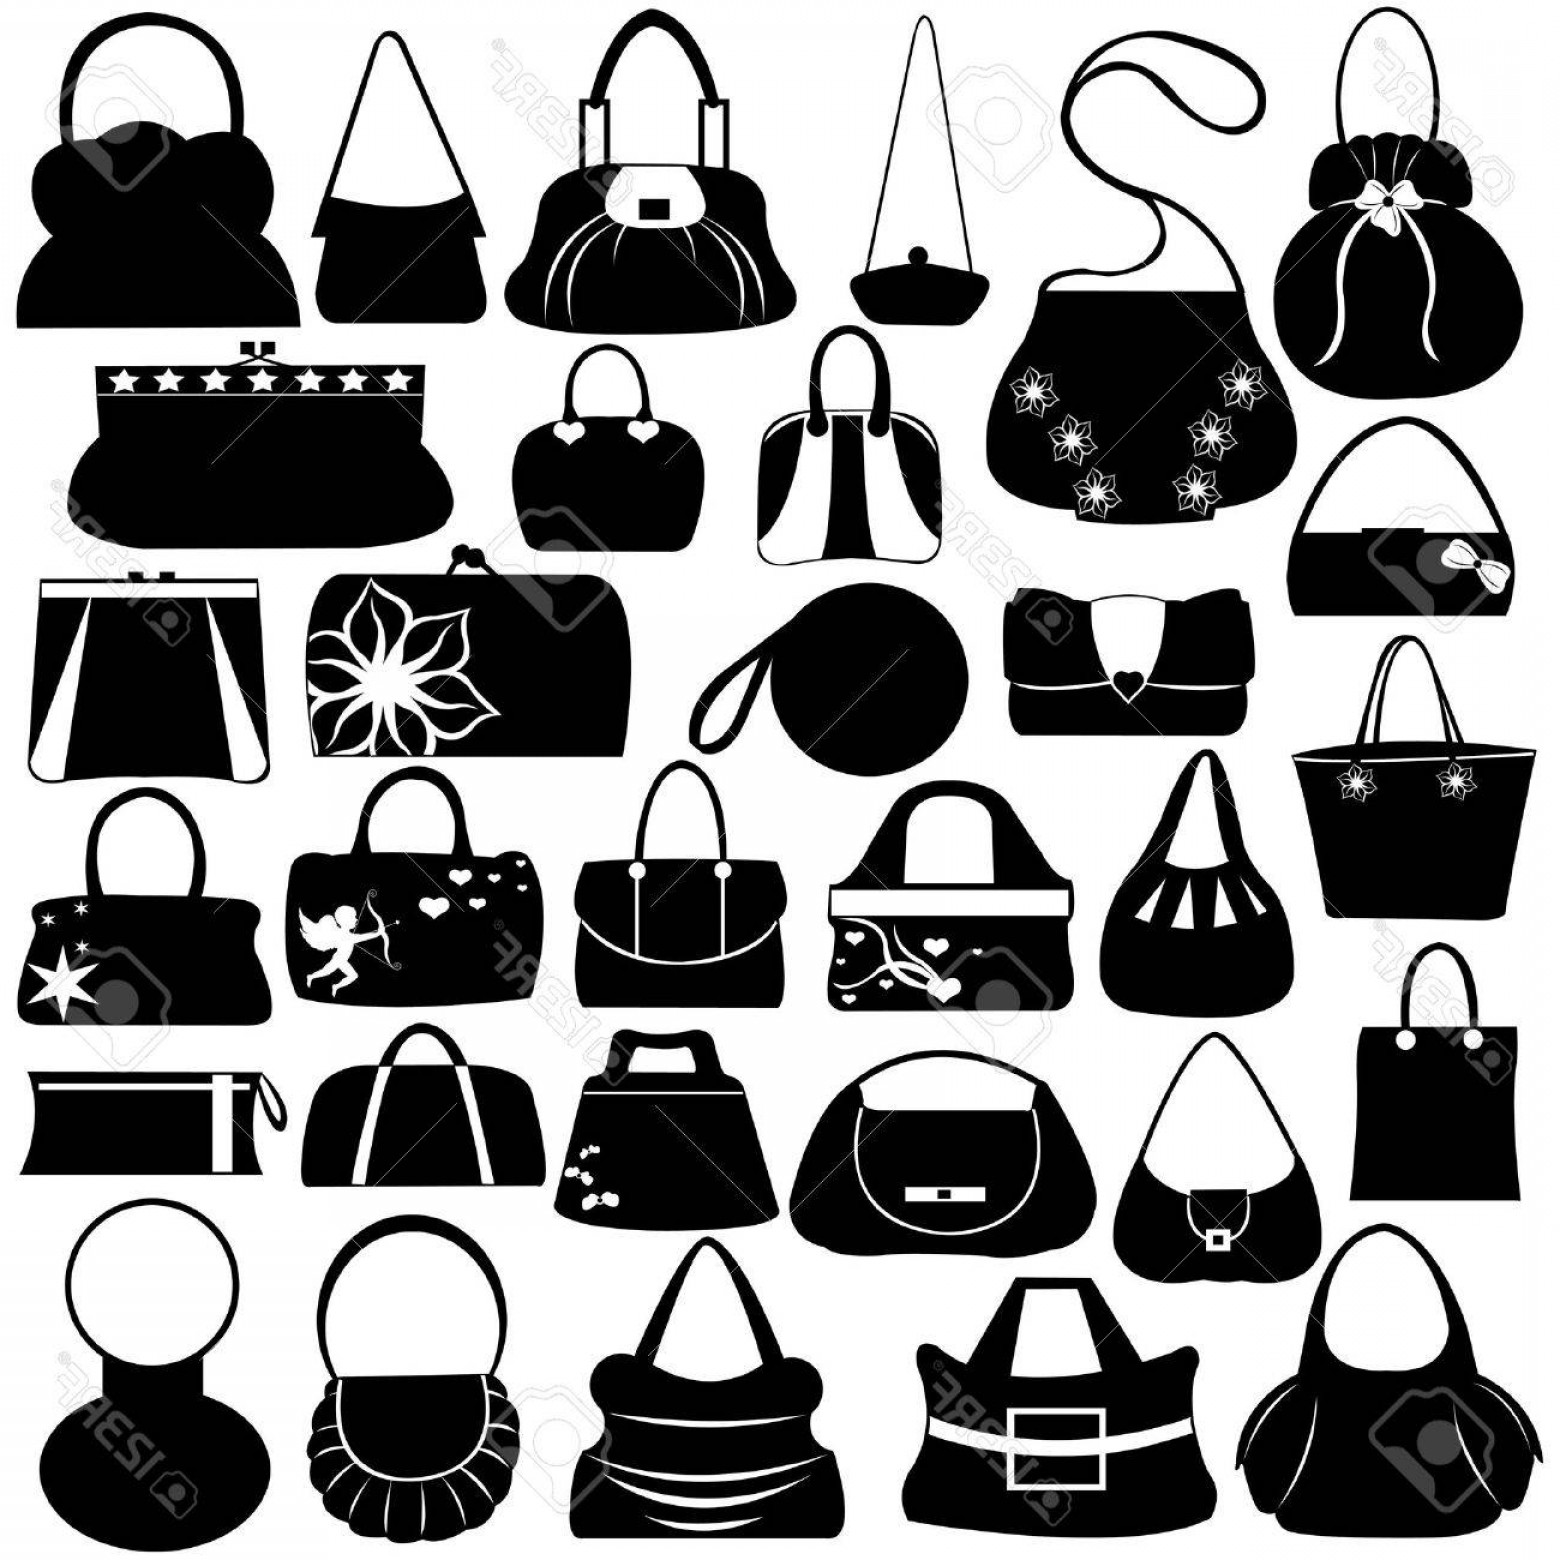 Purse Vector Art: Photofemale Purse Set Isolated On White